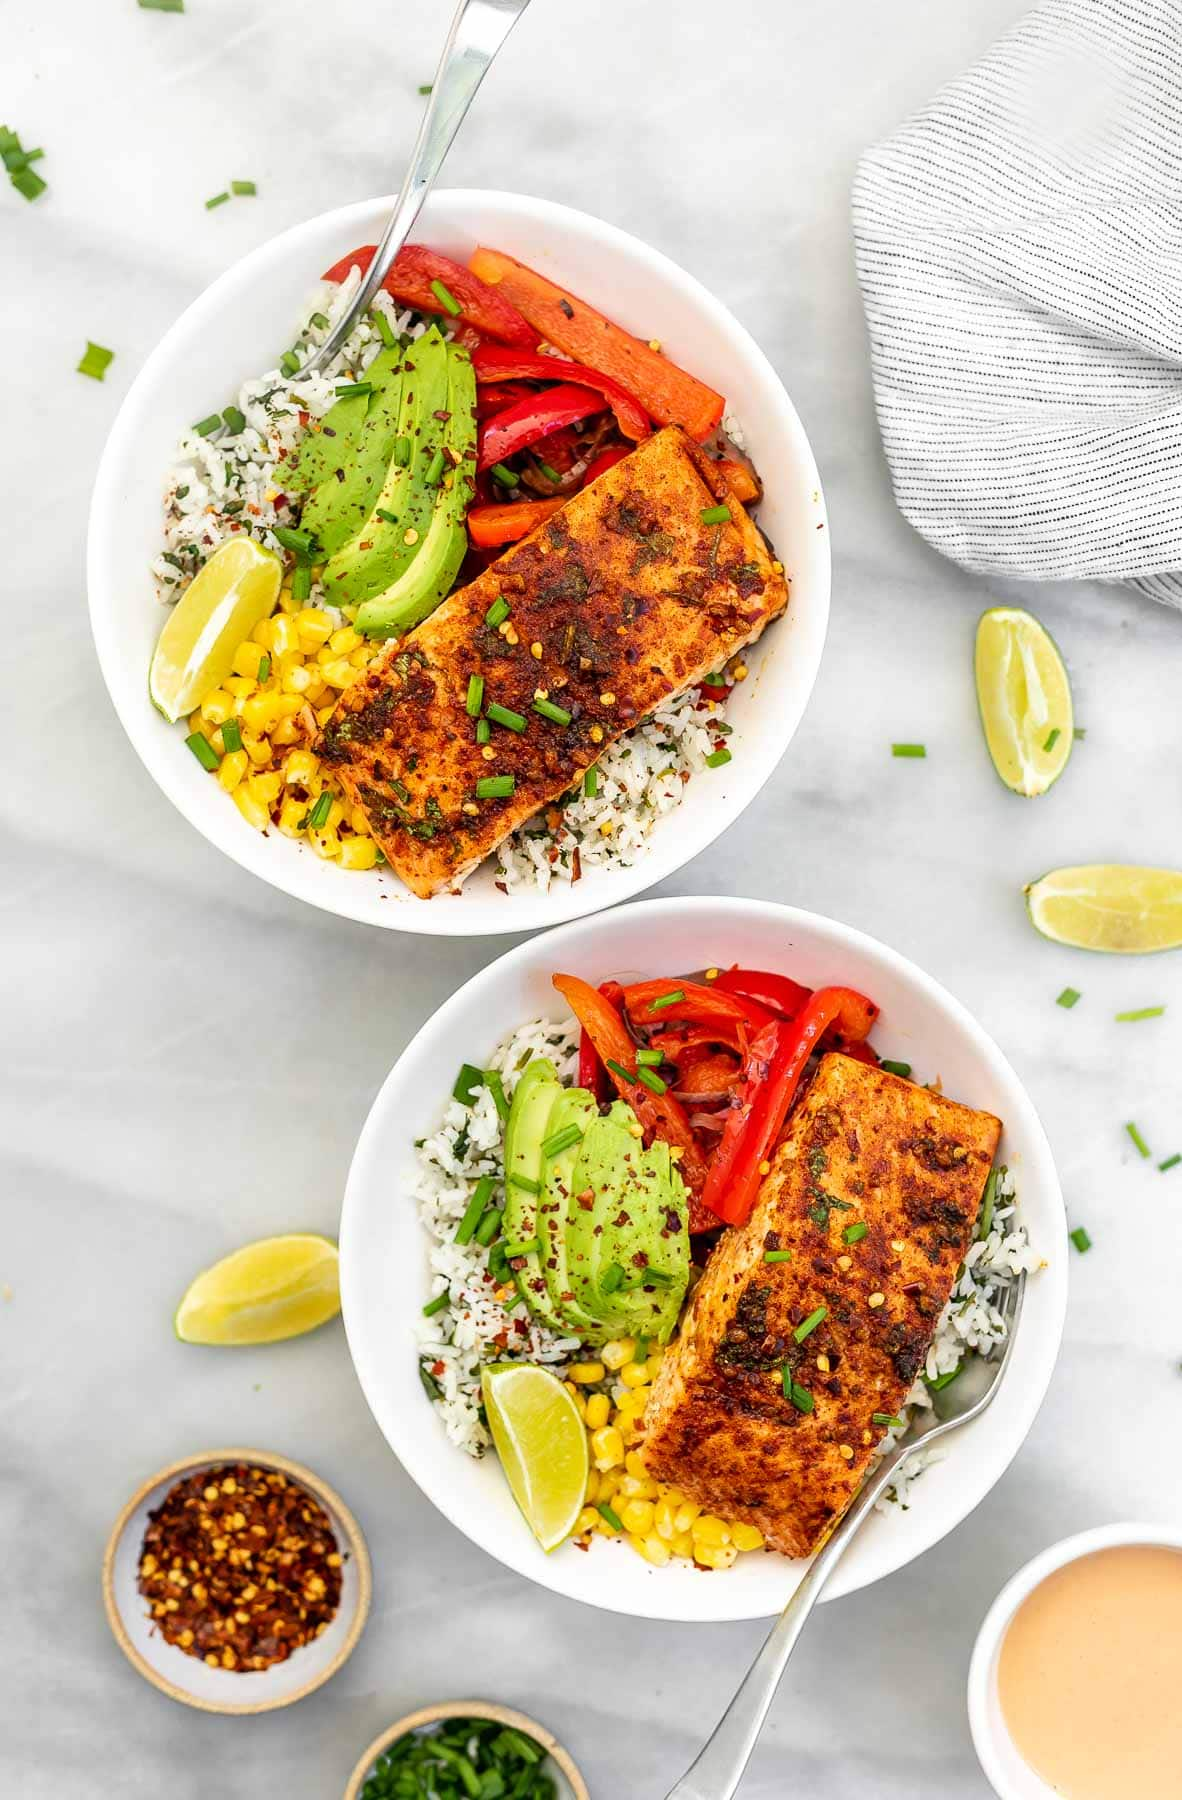 Two salmon bowls with forks on the side.